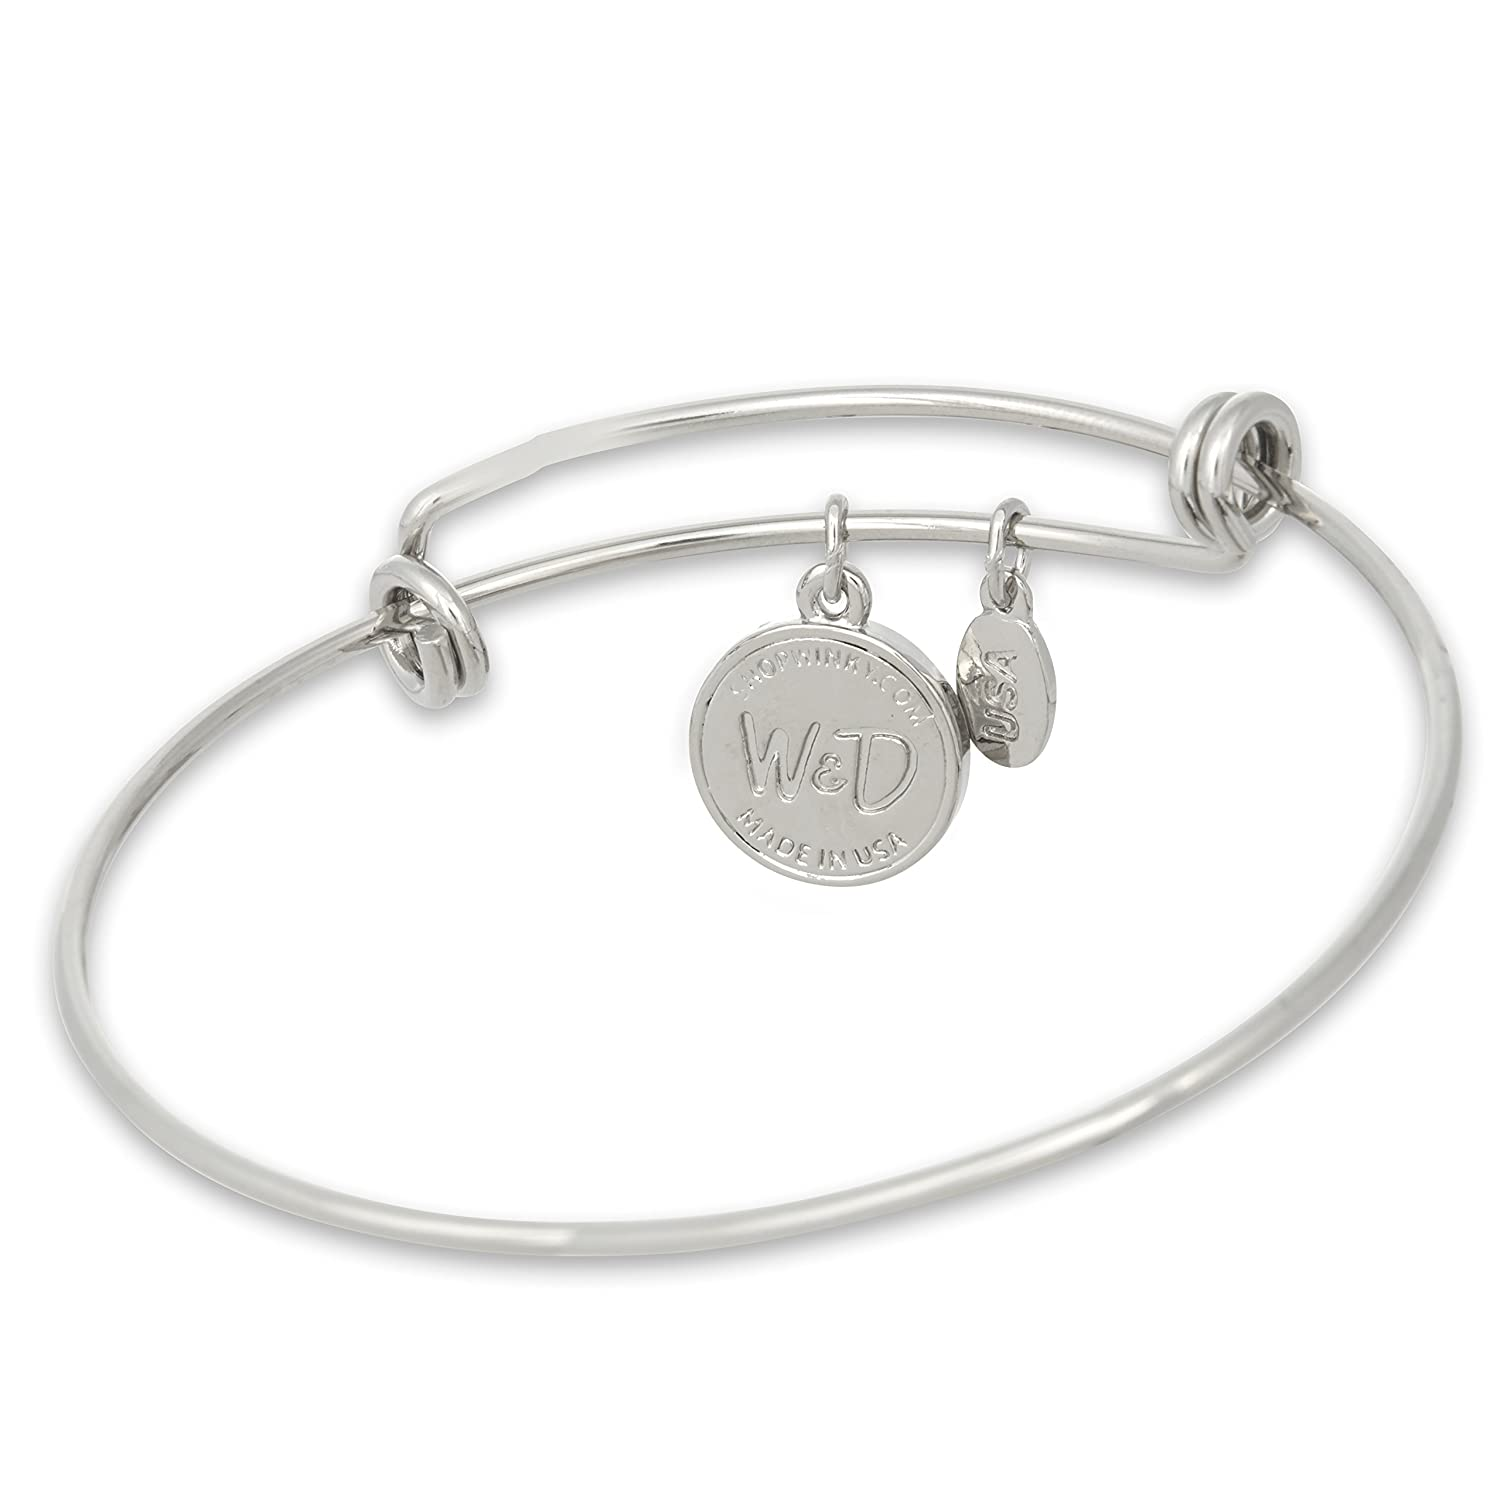 The Adjustable Band Bangle Bracelet featuring the 8-ball